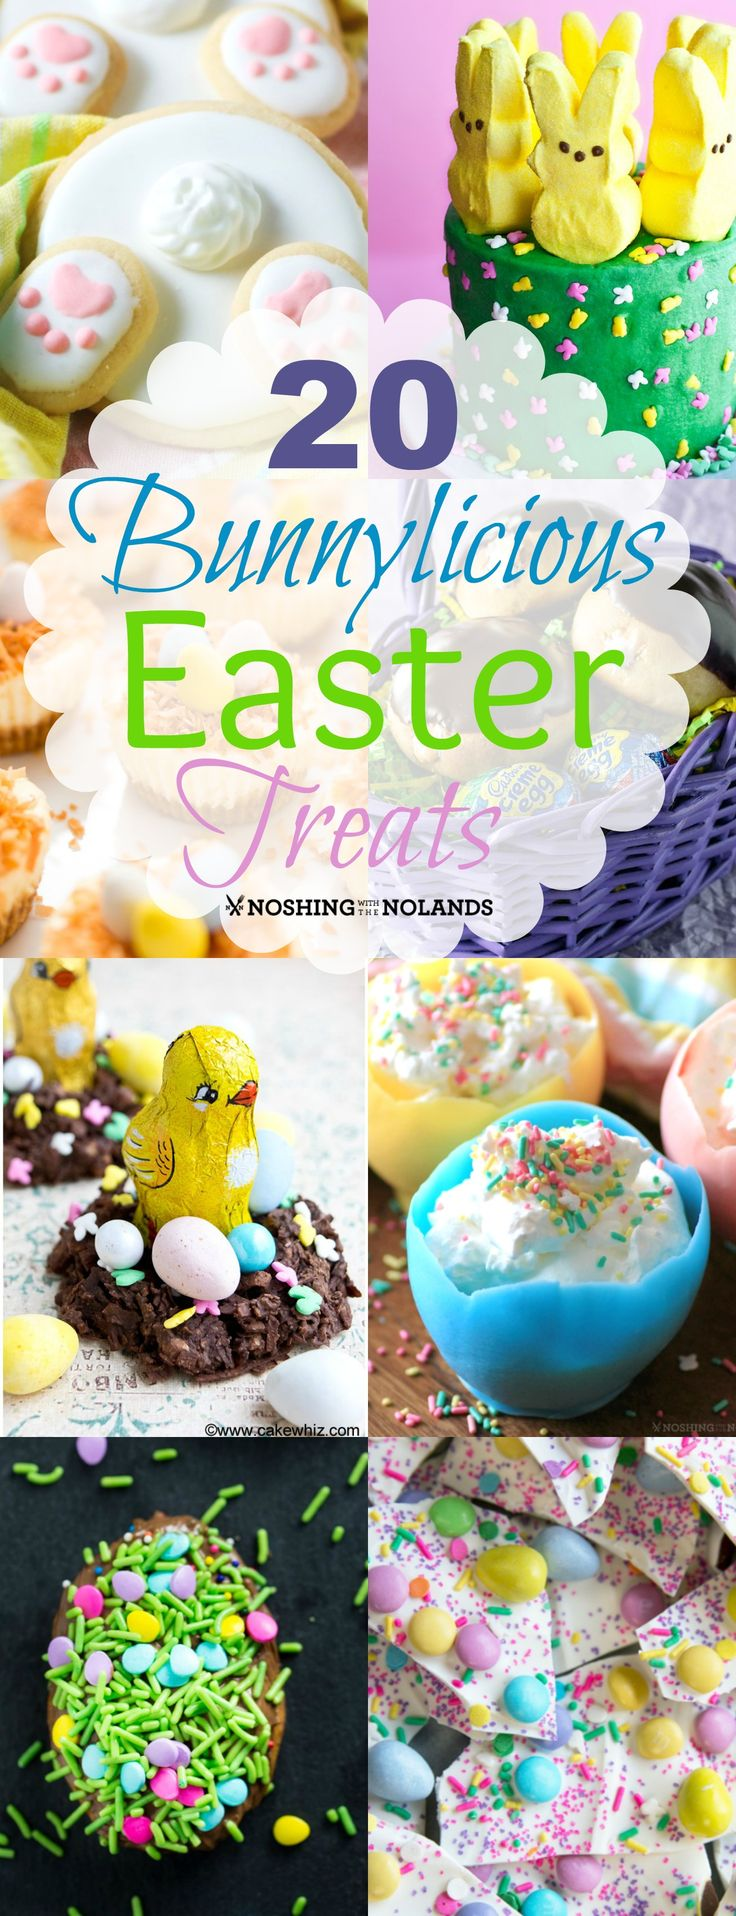 20 Bunnylicious Easter Treats from Noshing With The Nolands will bring a smile to anyone's face. They are fun to make and share!